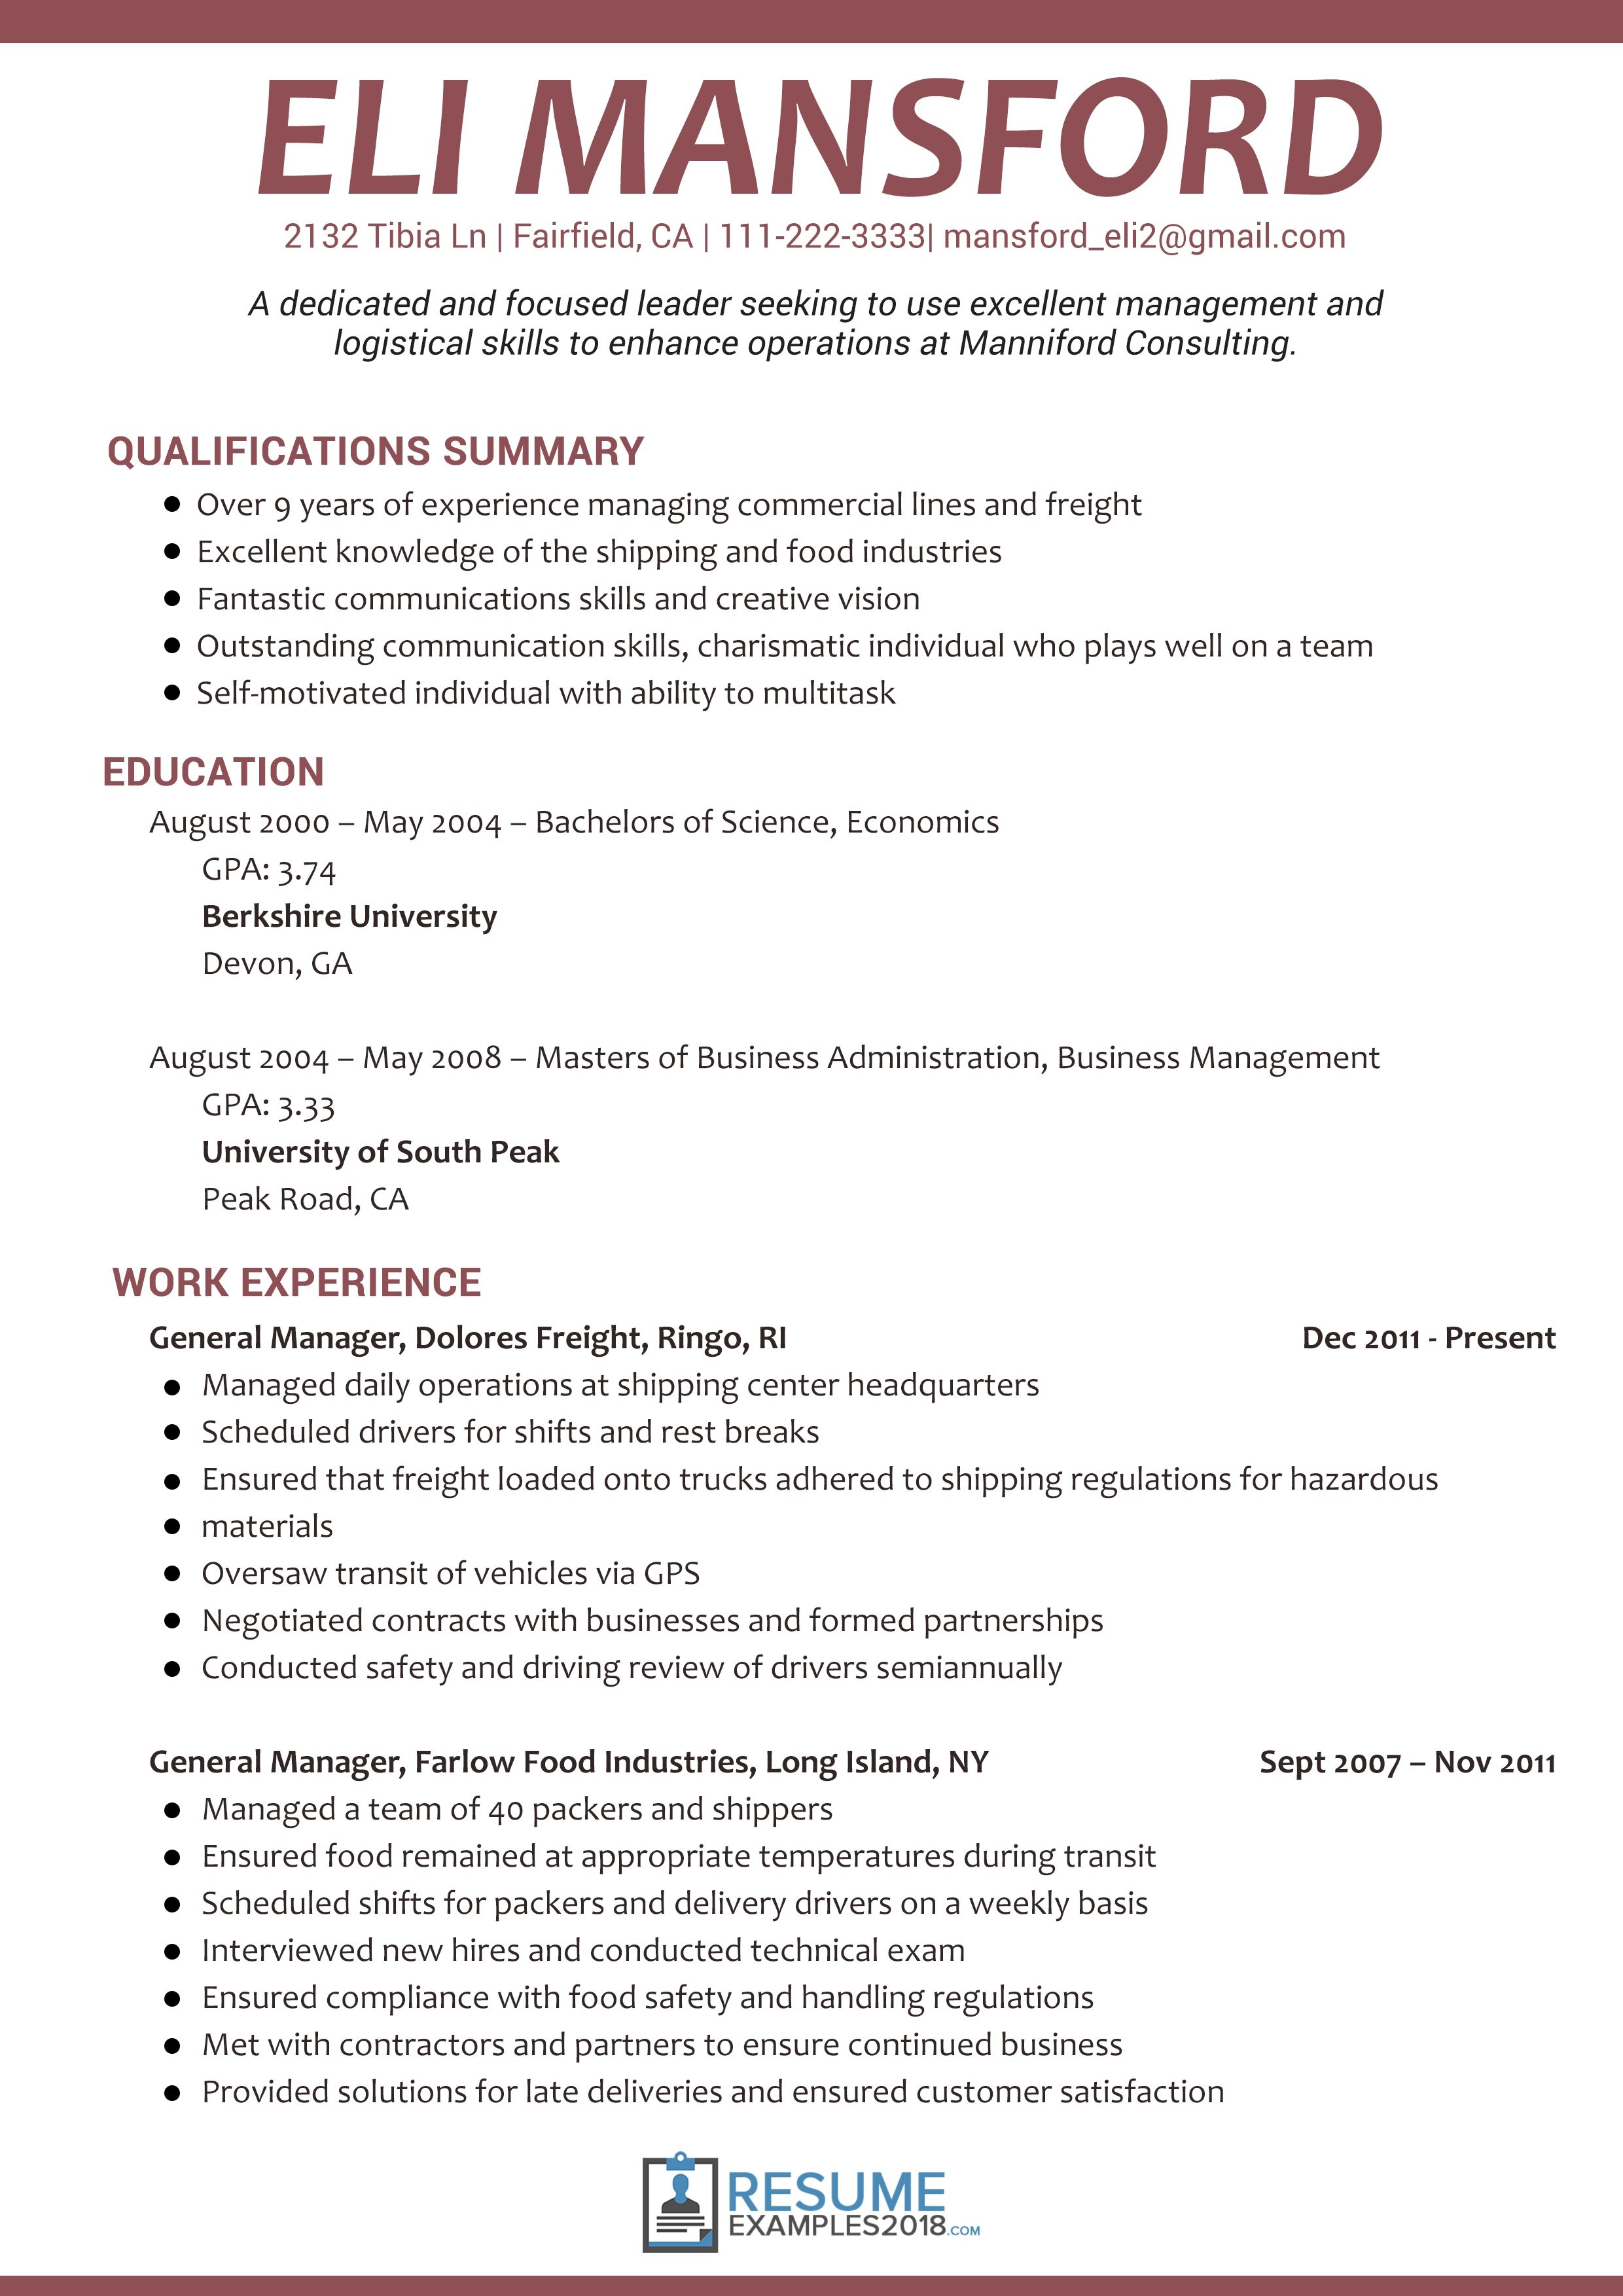 Resume Examples 2018 Skills examples resume